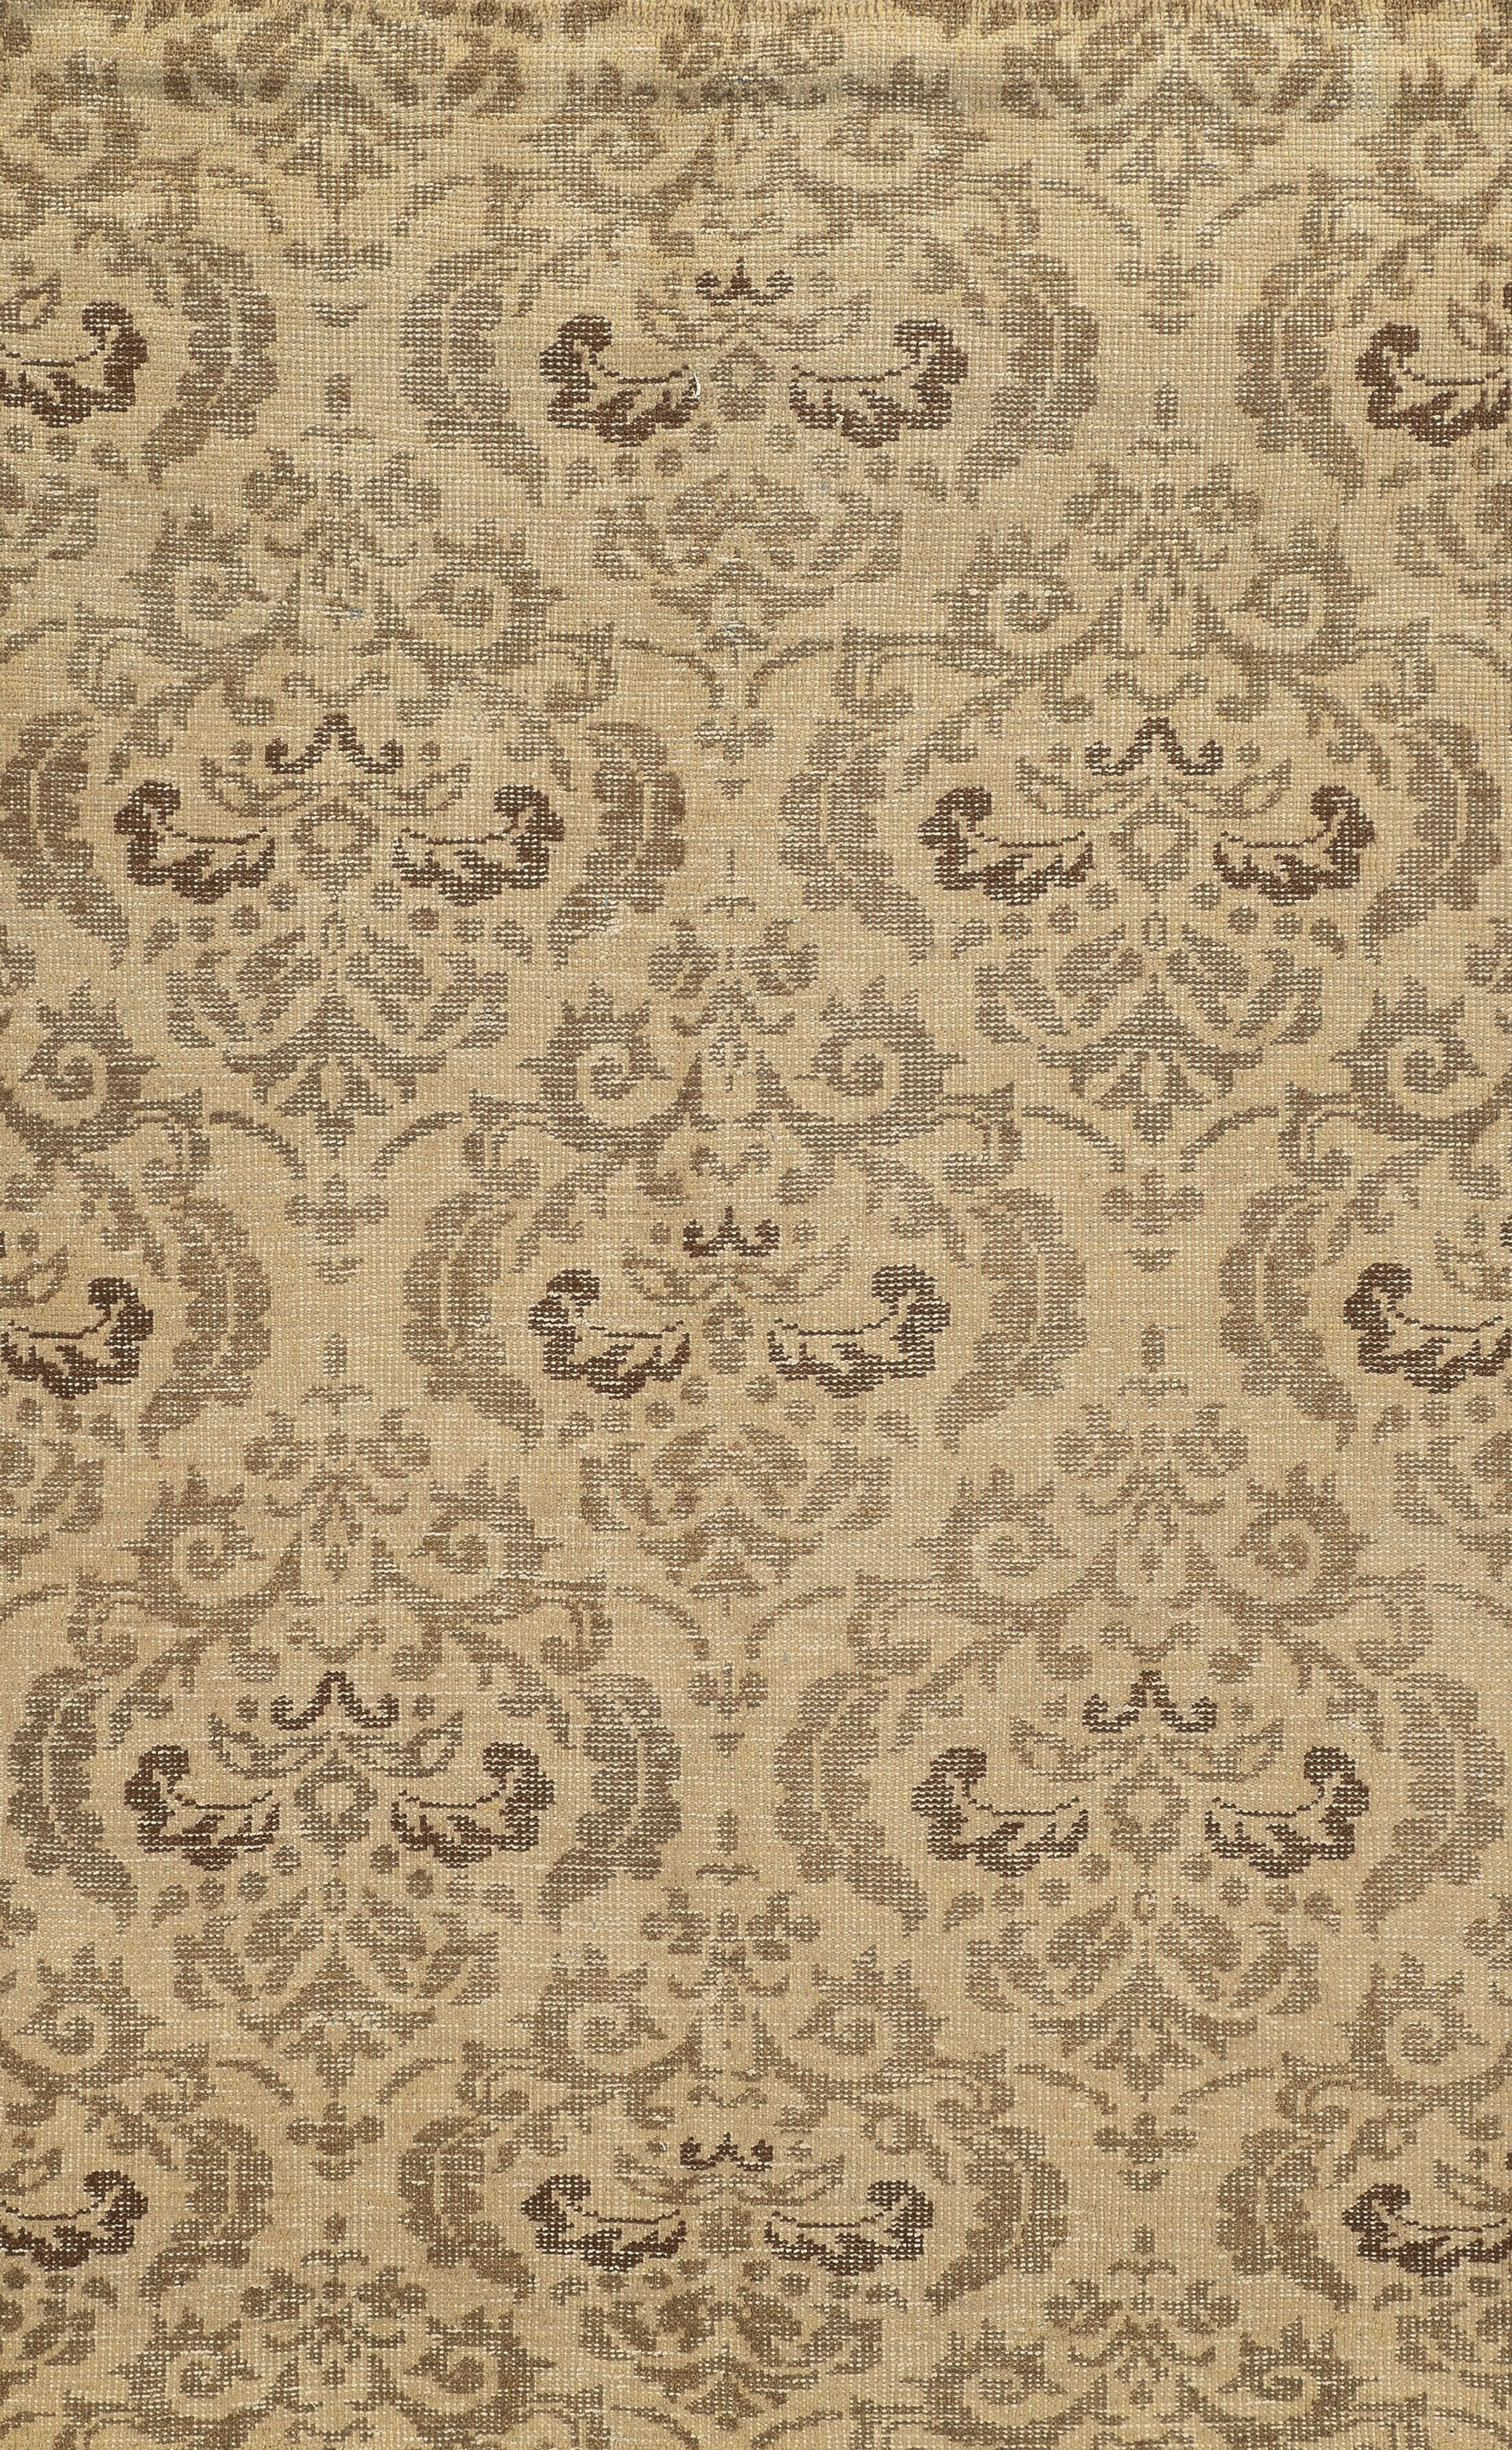 Almeria Hand-Knotted Ivory/Grey Area Rug Rug Size: Rectangle 2' x 3'